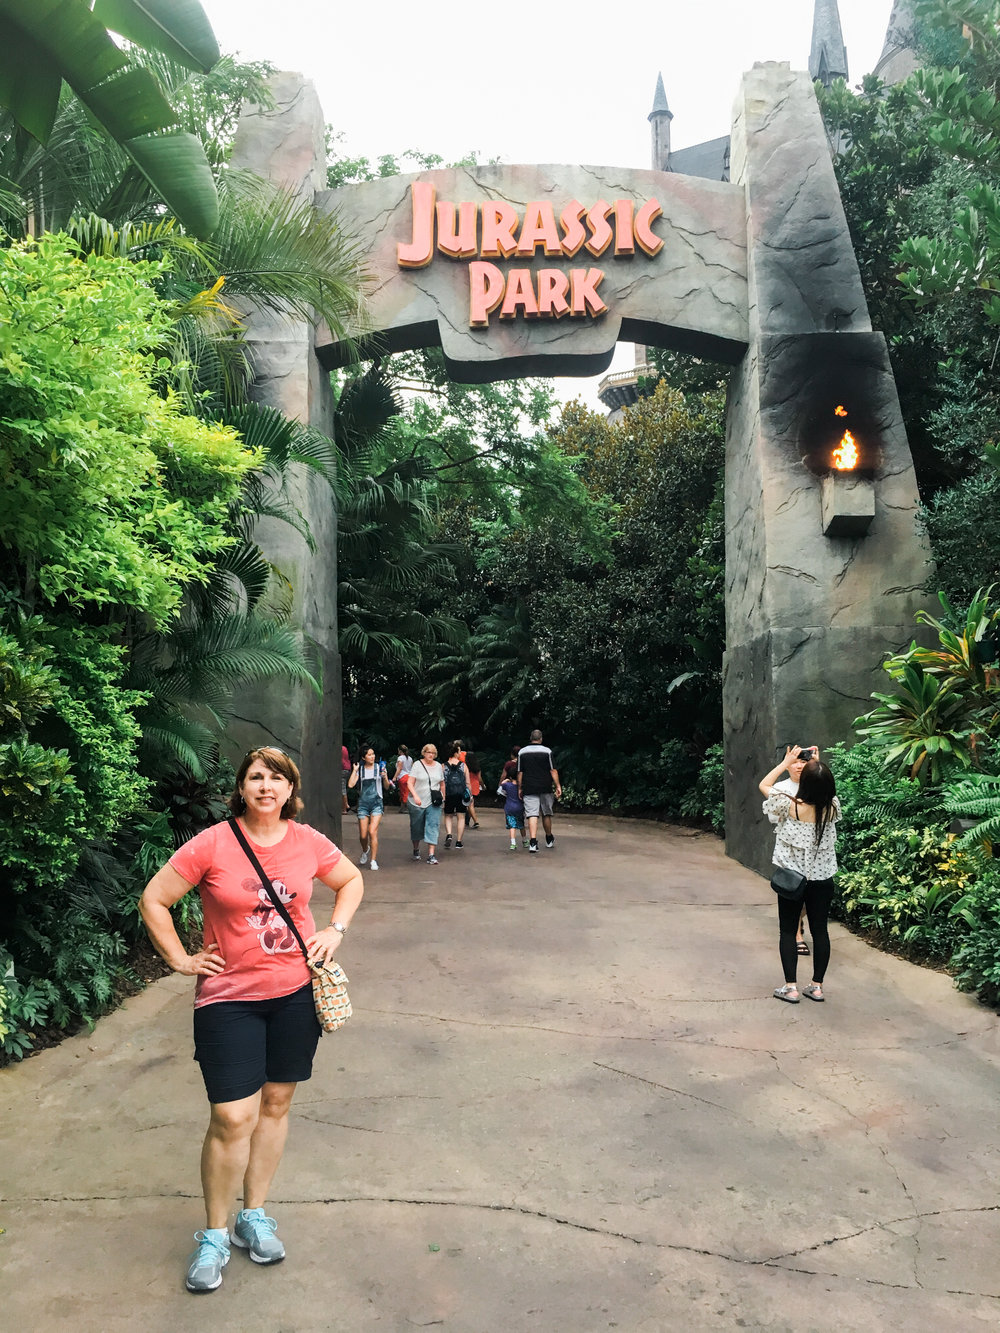 jurassic park islands of adventure orlando florida travel photographer